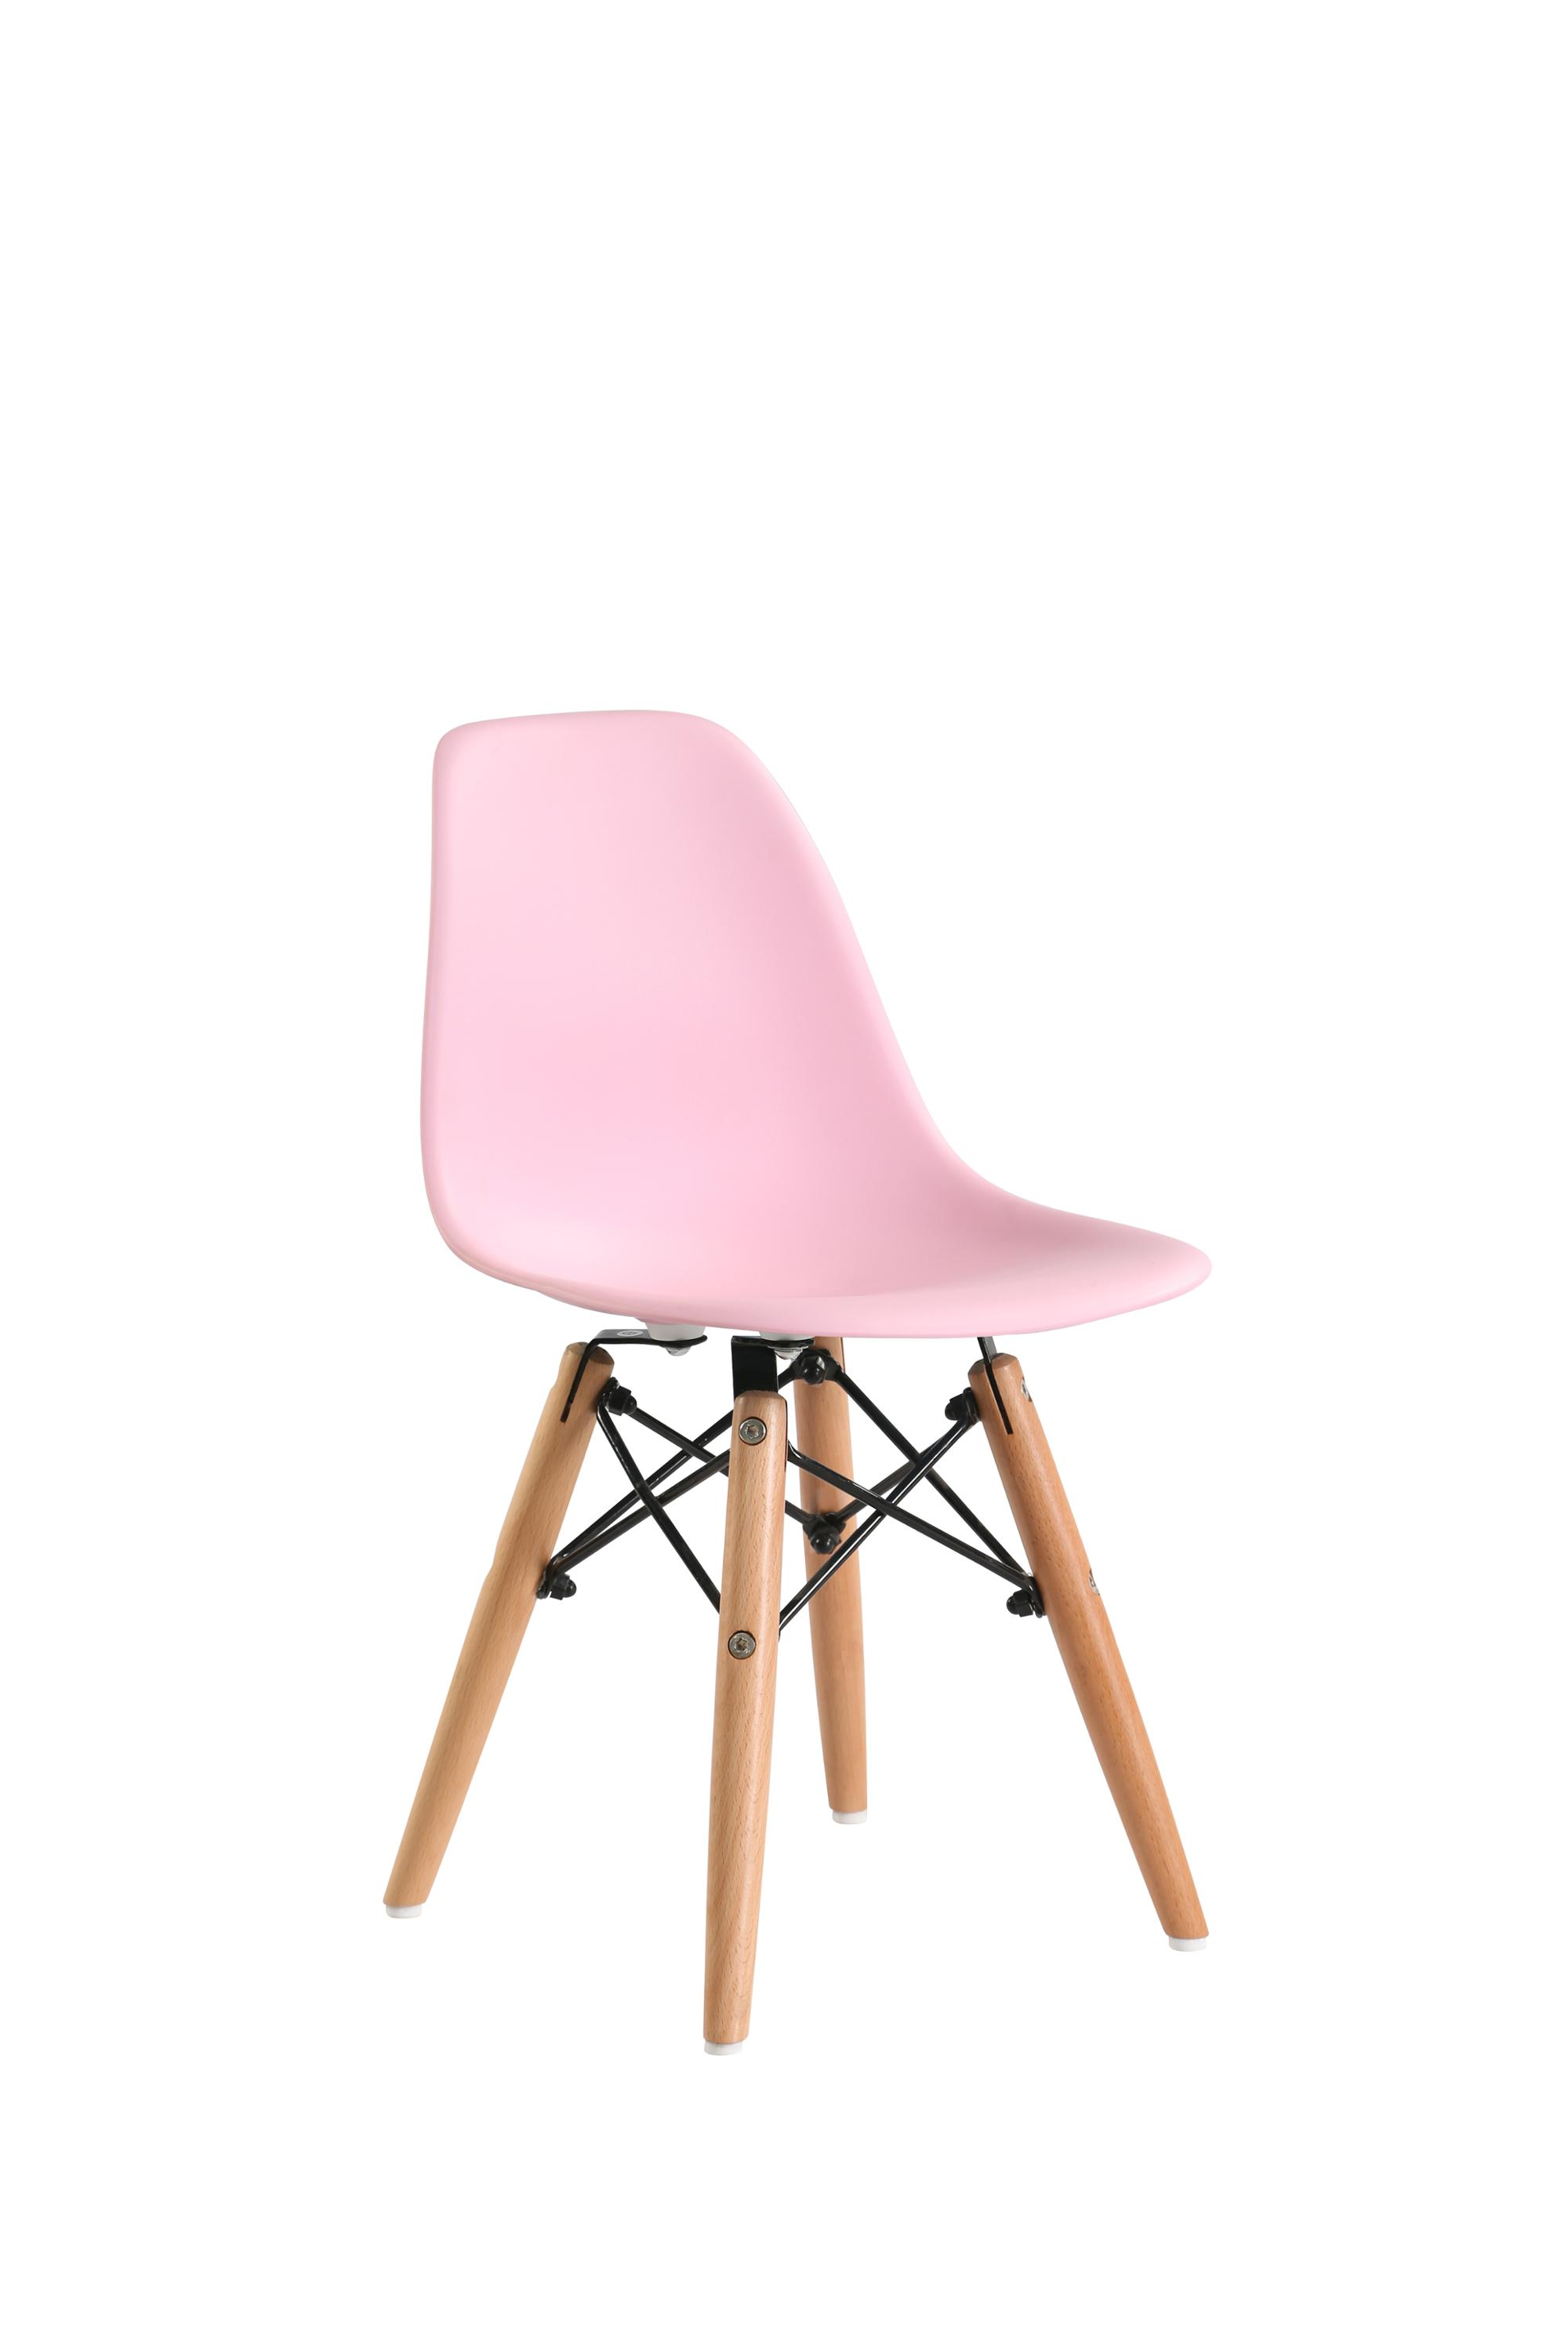 pin molded gaud artemide by for two com chair chairs plastic modern magistretti material